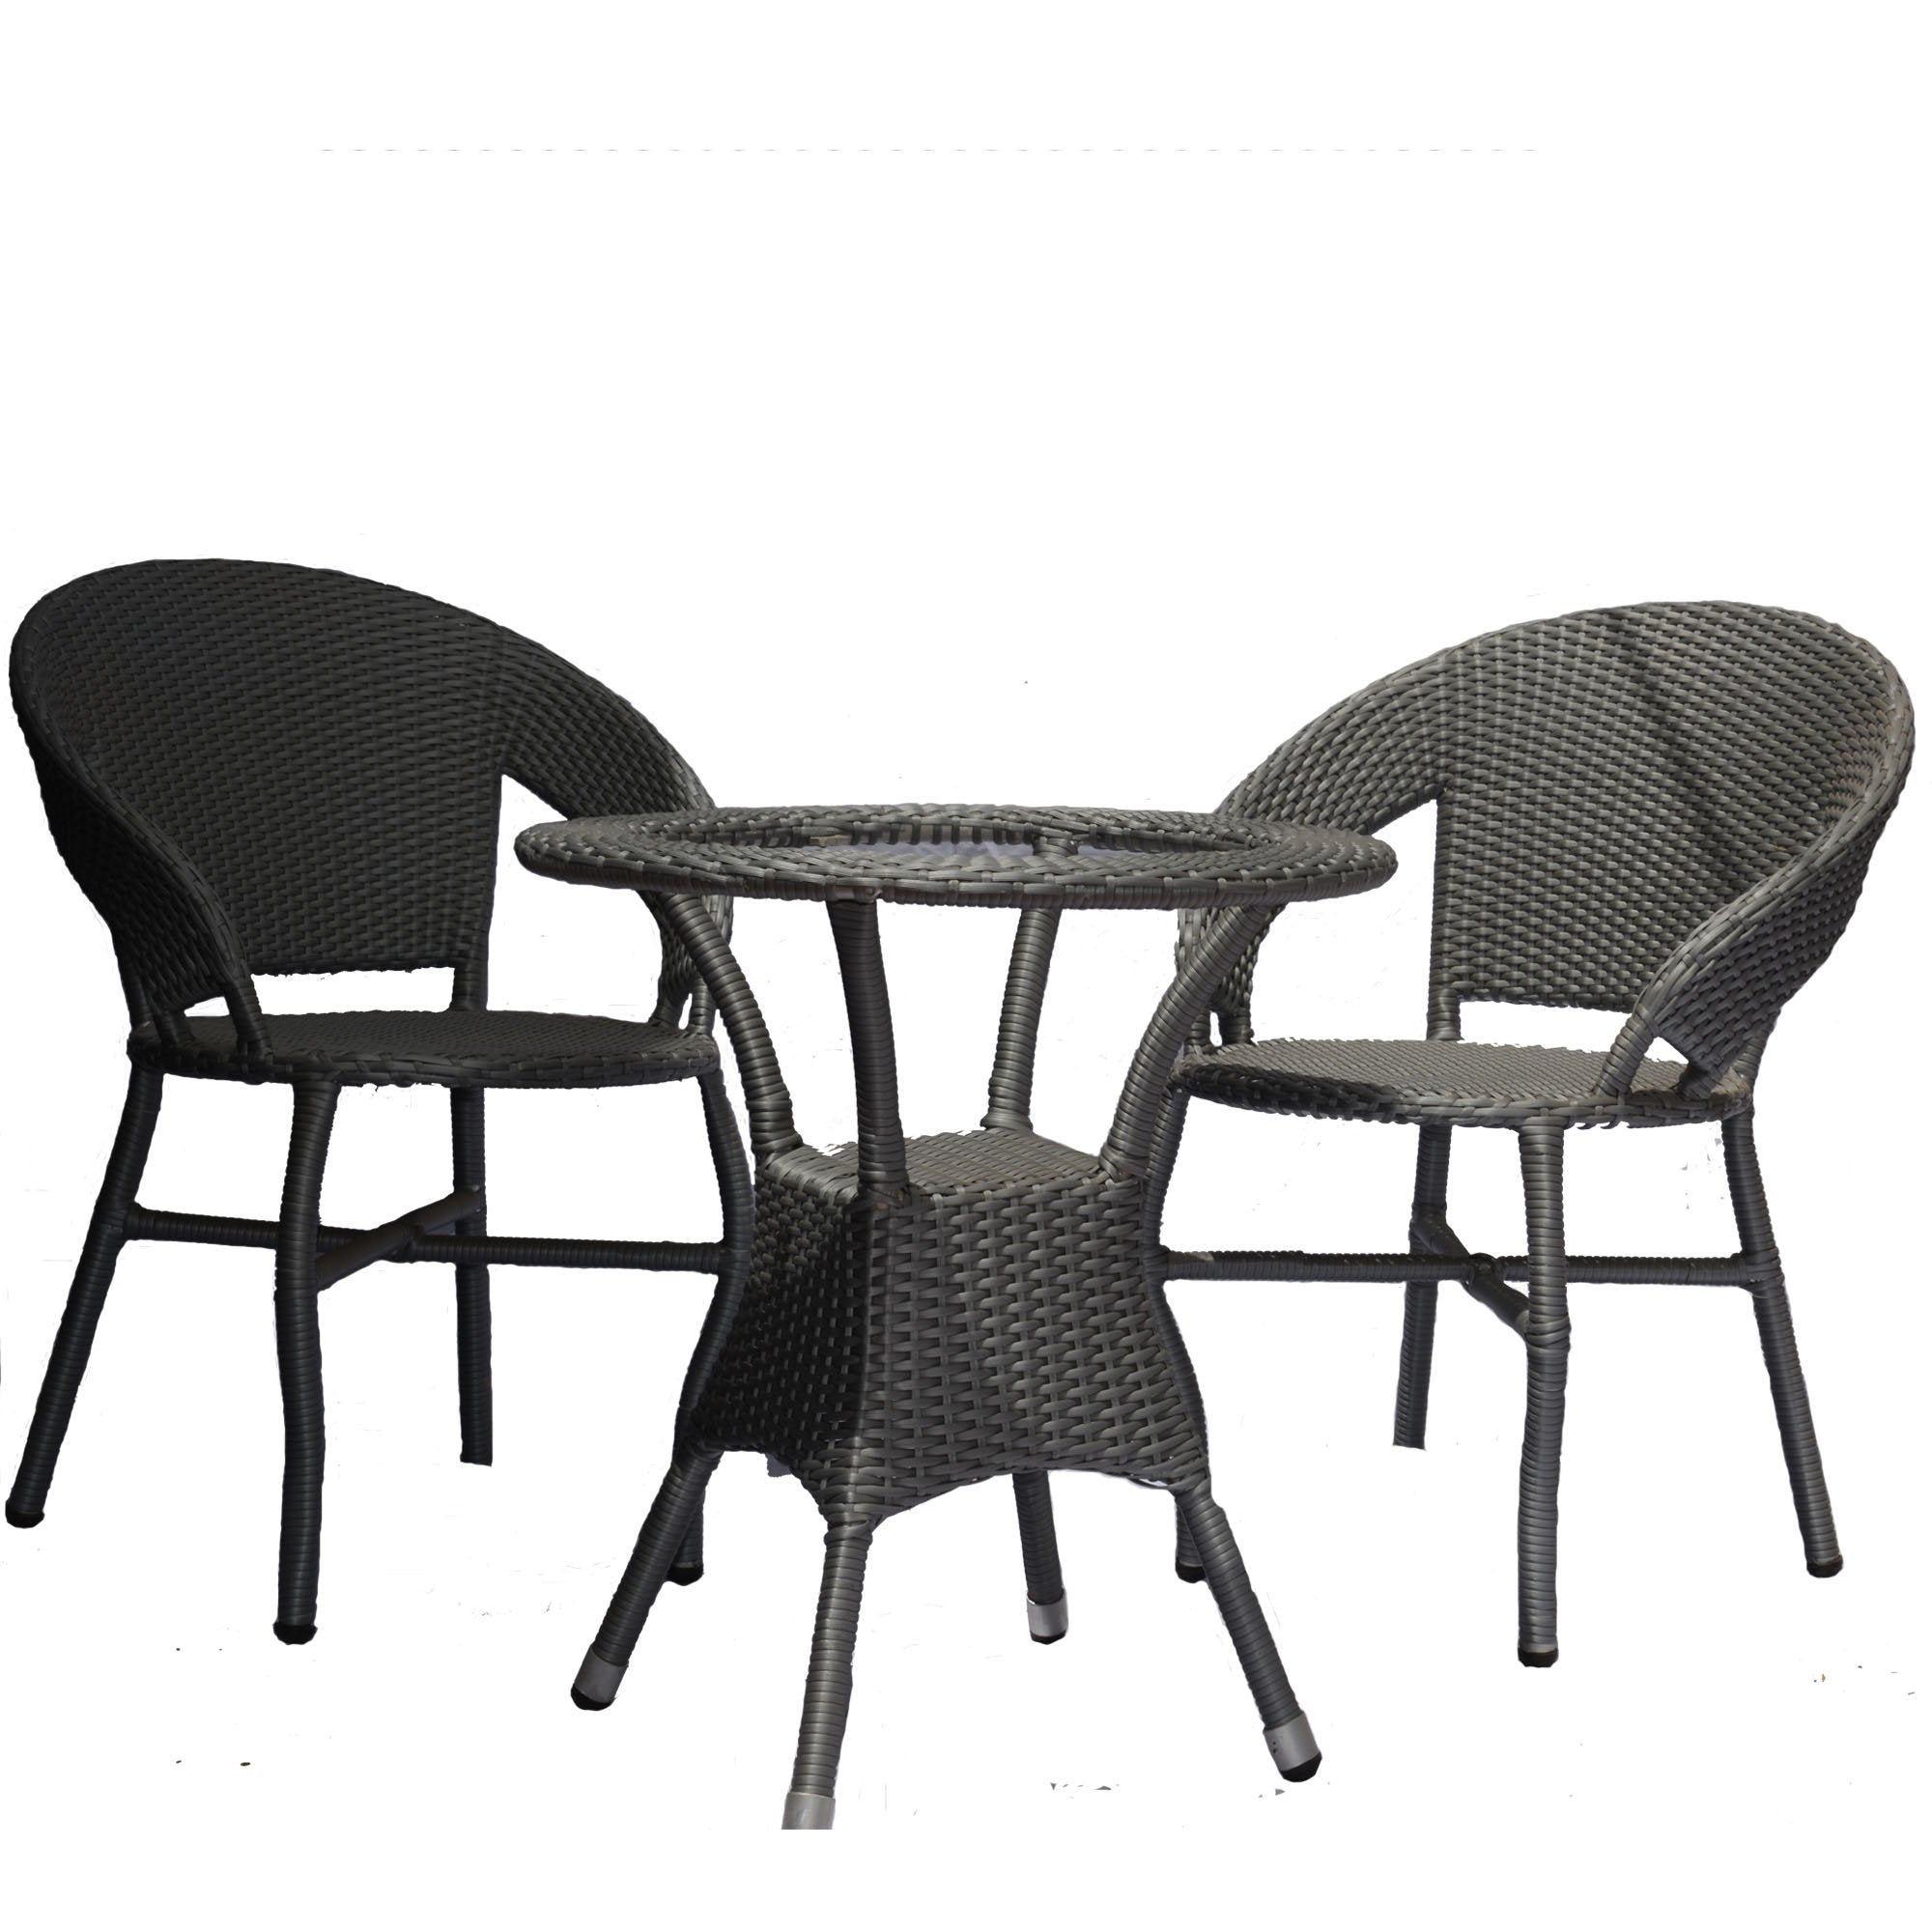 Contemporary Style Outdoor Furniture Set - Teak Tale